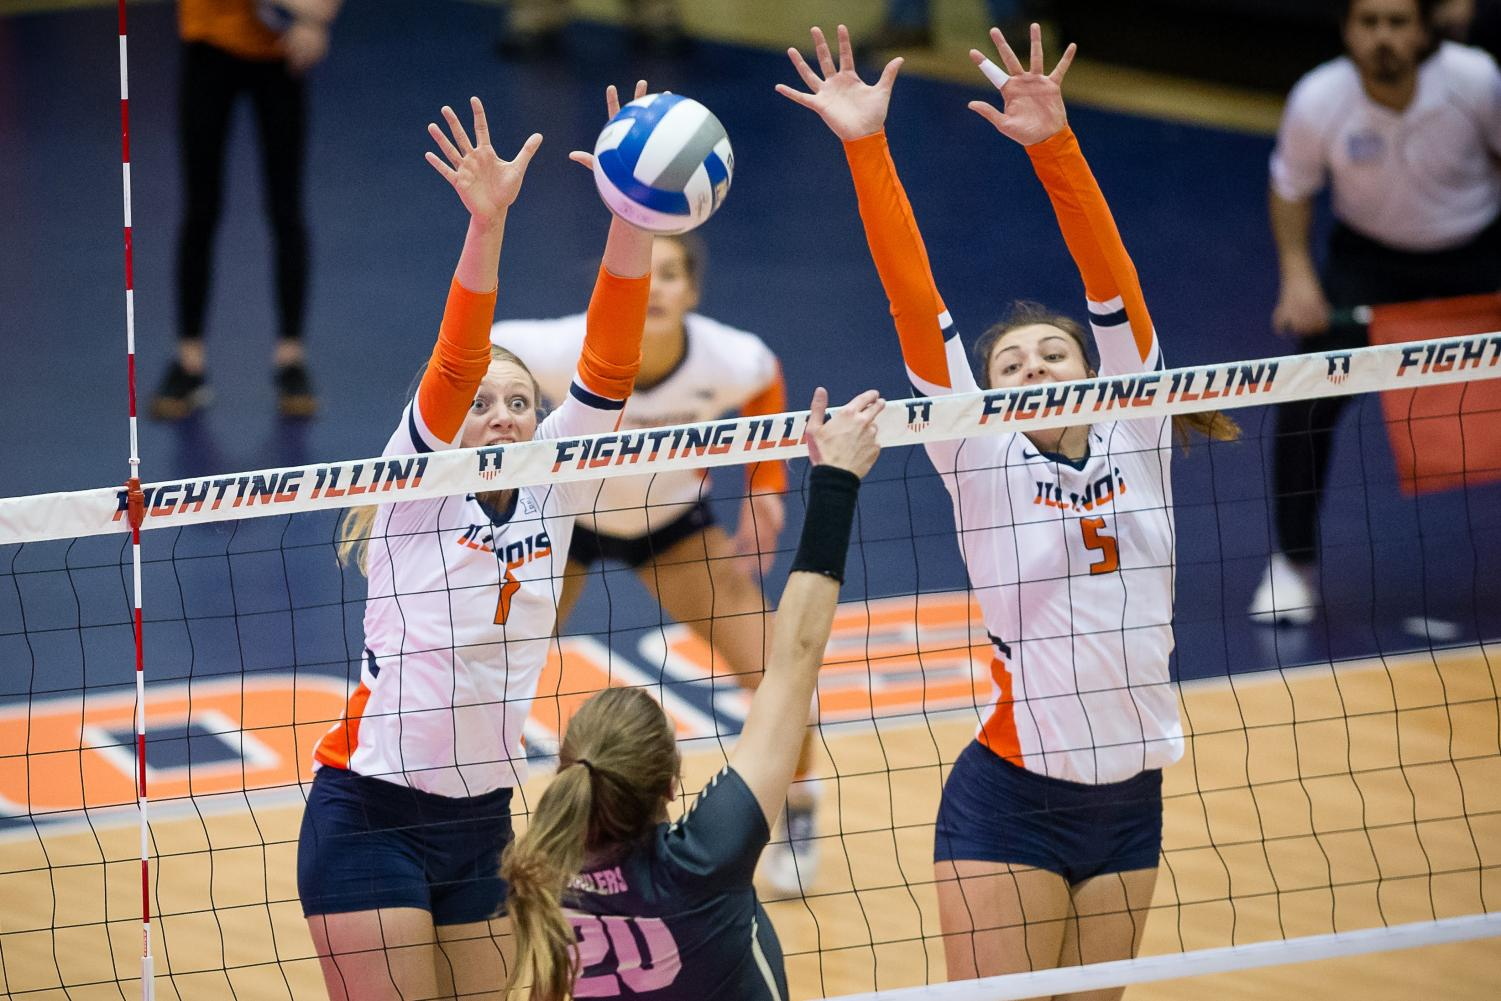 Team set for NCAA tournament after win | The Daily Illini